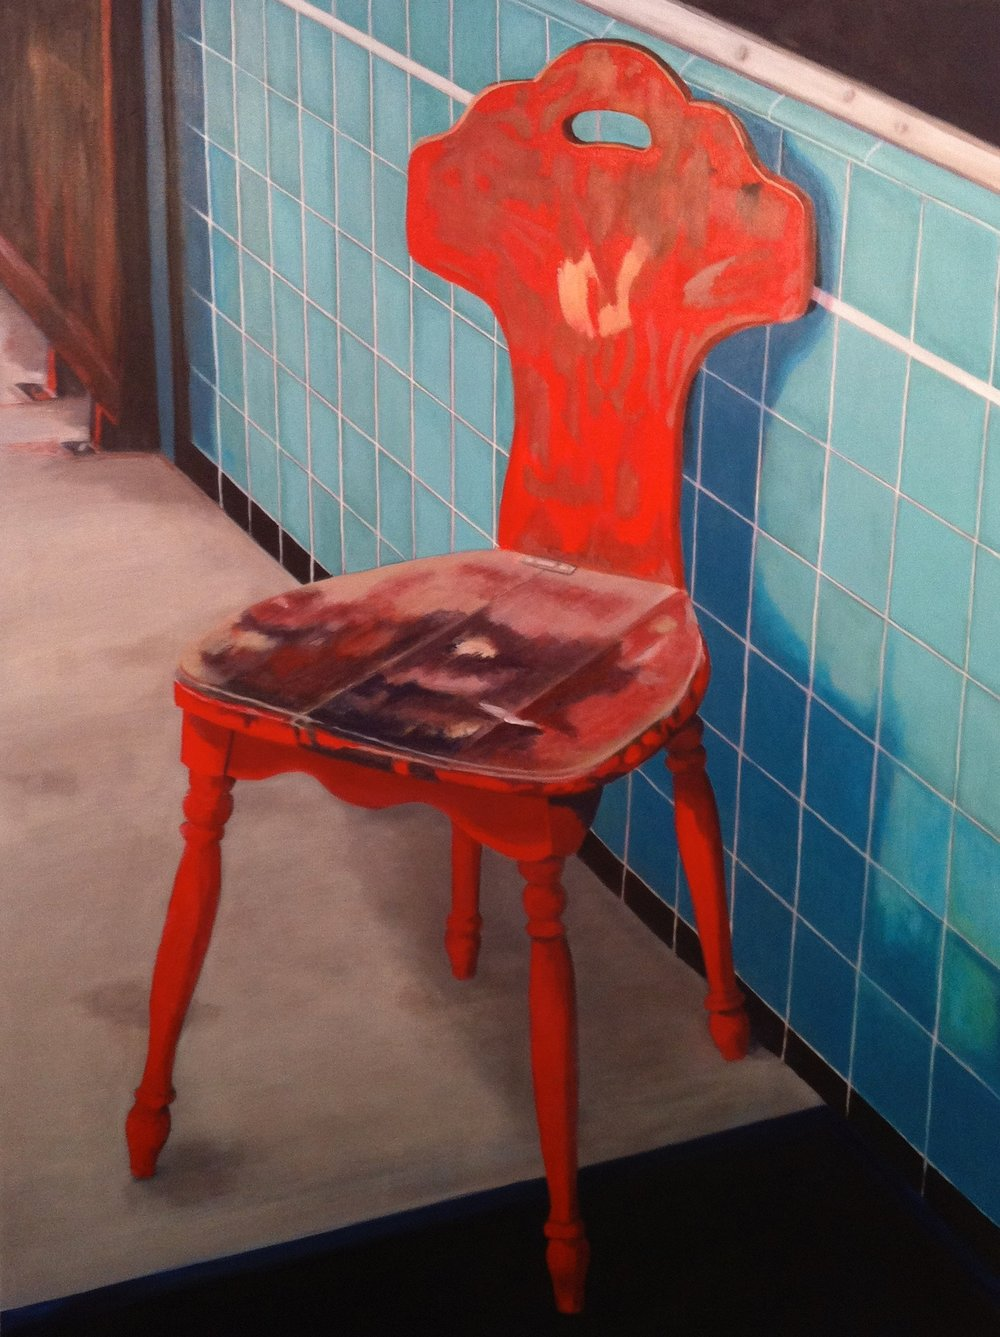 Chinatown Chair, 30 x 24, acrylic